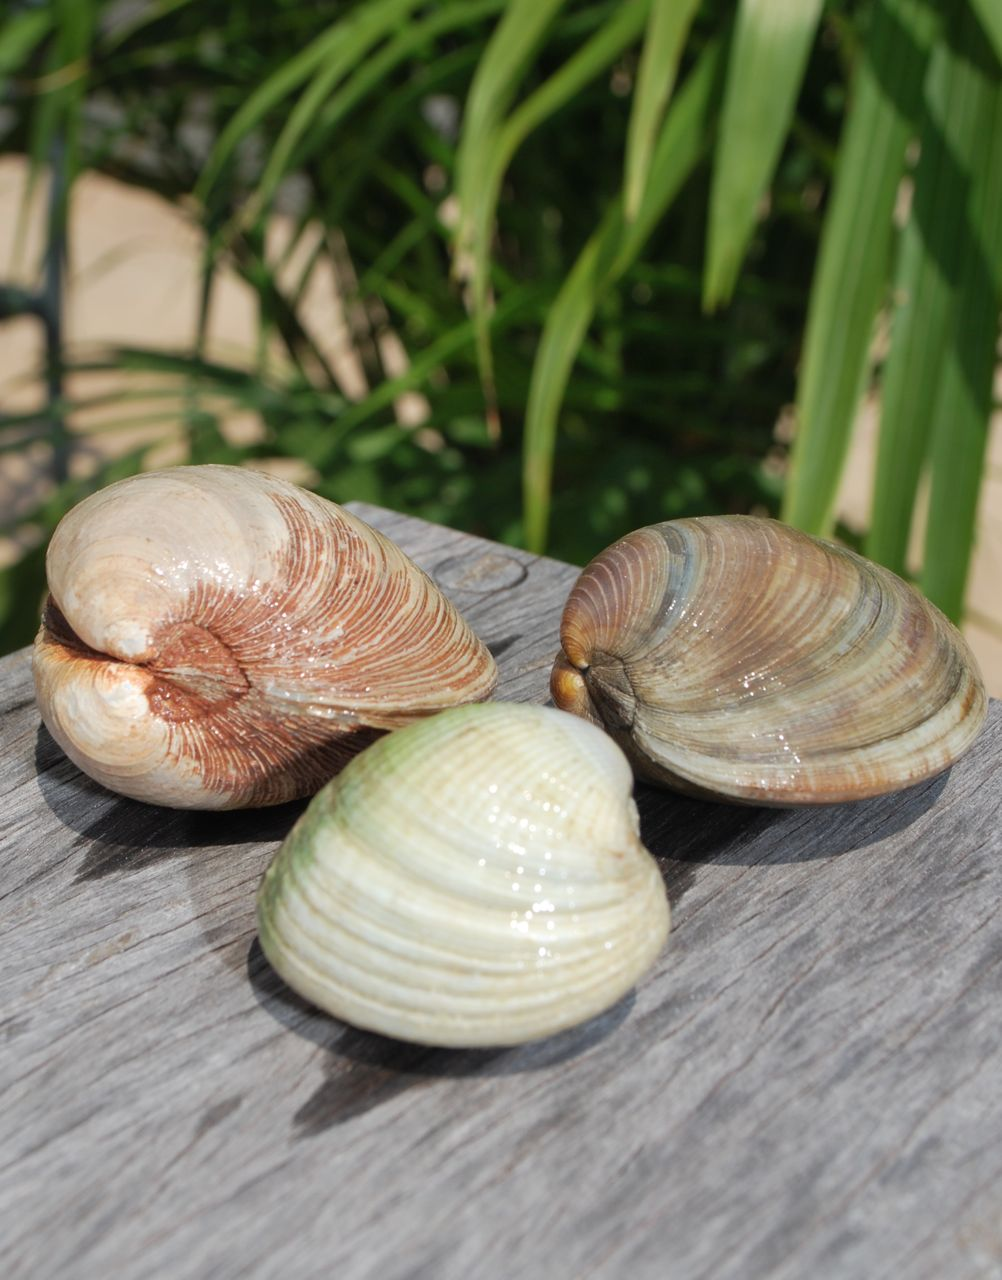 Clam : Littleneck clam (left), cockle (centre) and pasta clam (right)